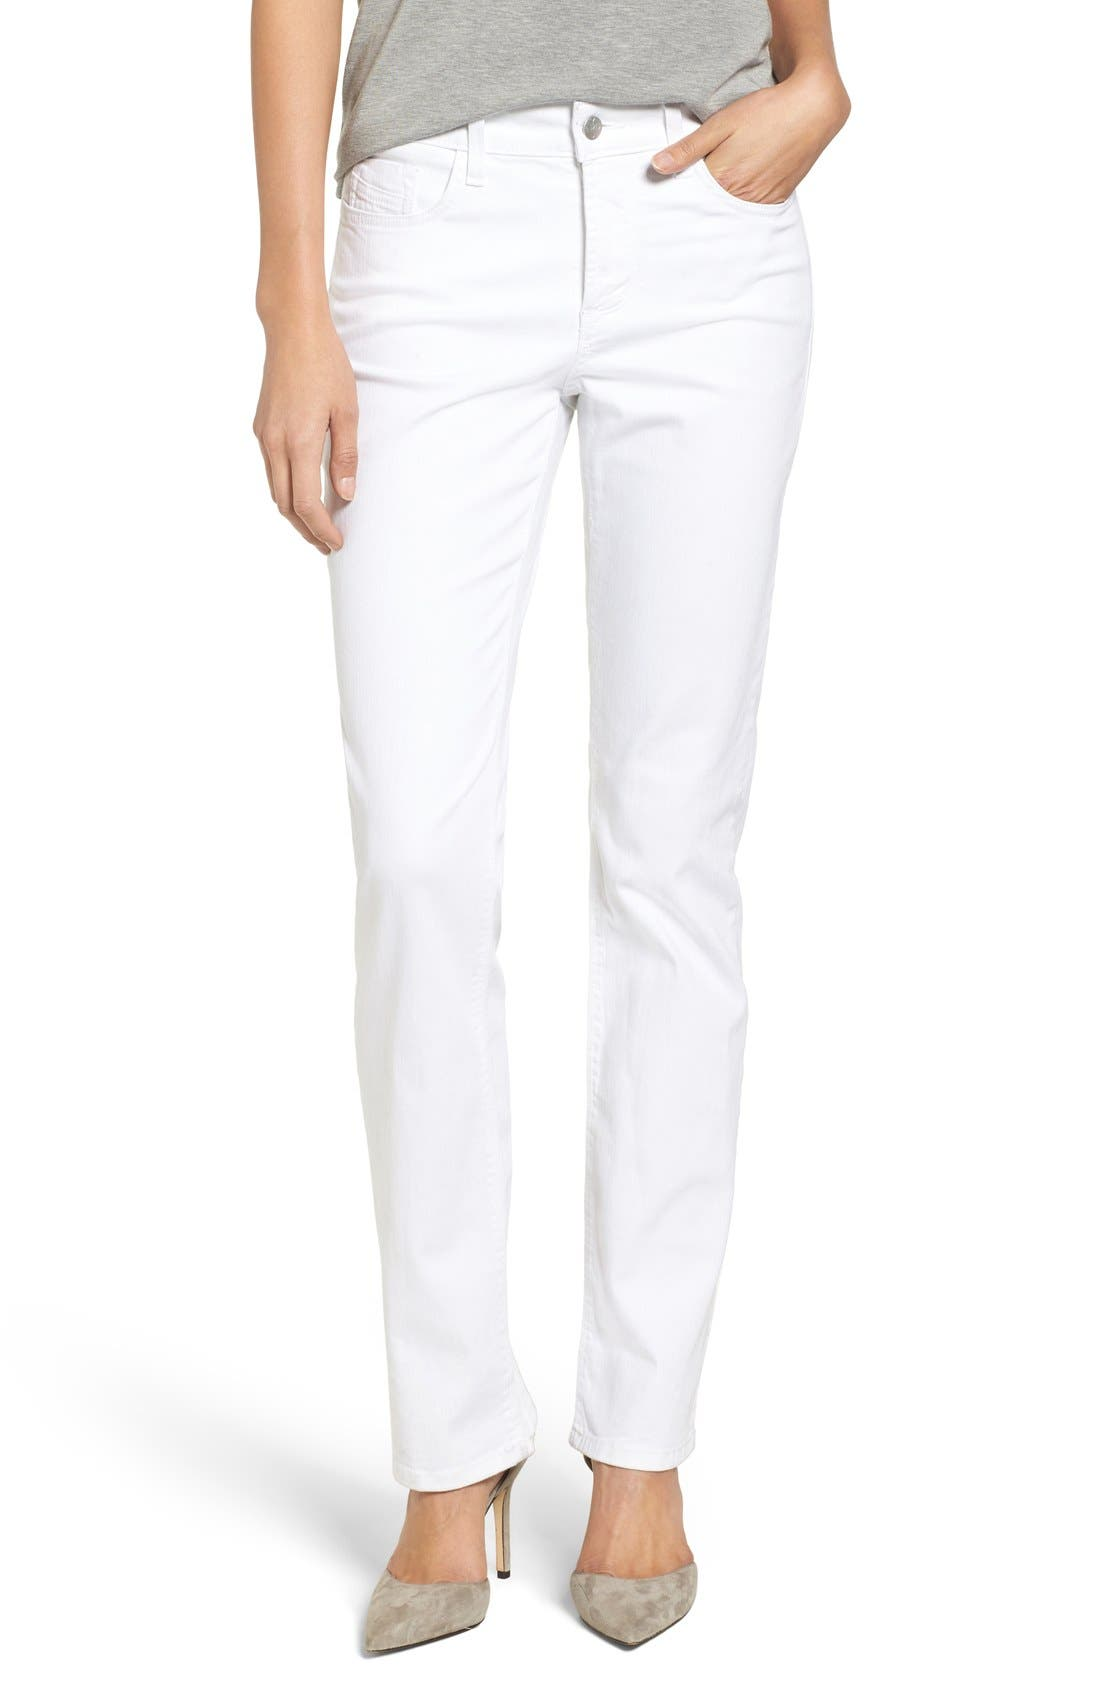 Marilyn Stretch Straight Leg Jeans,                             Main thumbnail 1, color,                             103